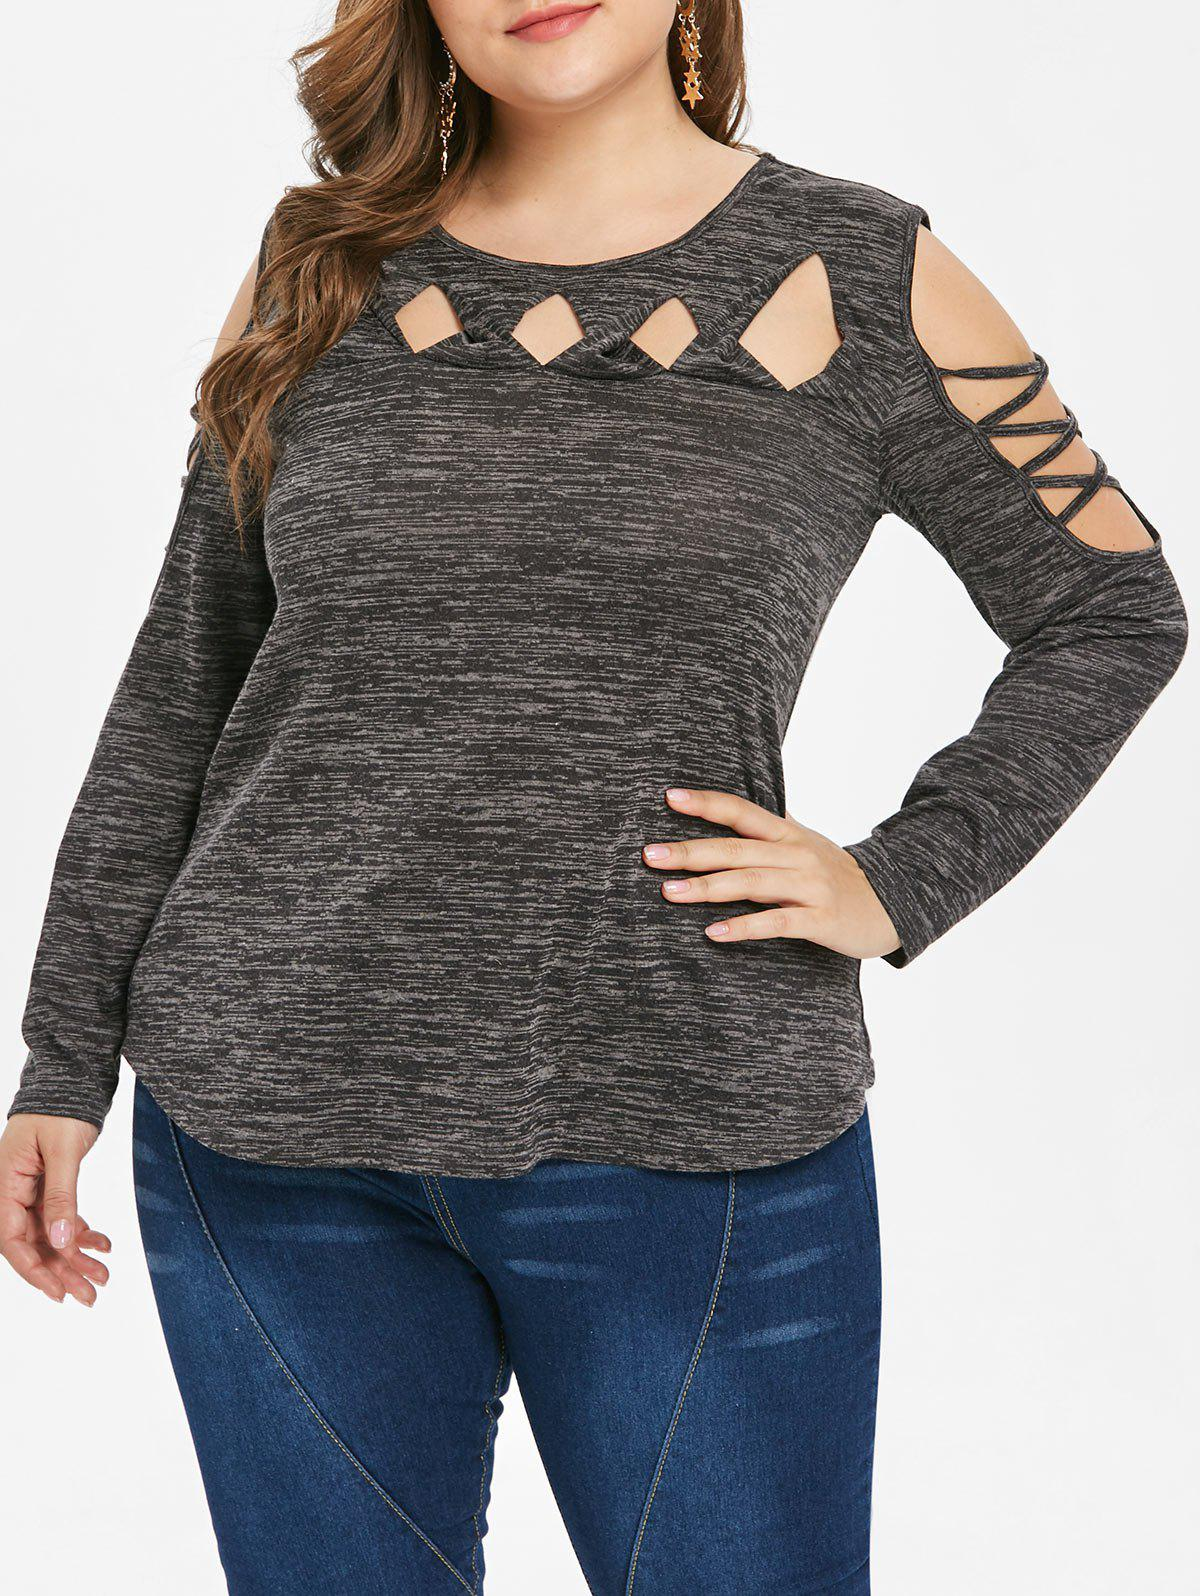 80723bf45 45% OFF] Plus Size Cut Out Criss Cross Open Shoulder T-shirt | Rosegal